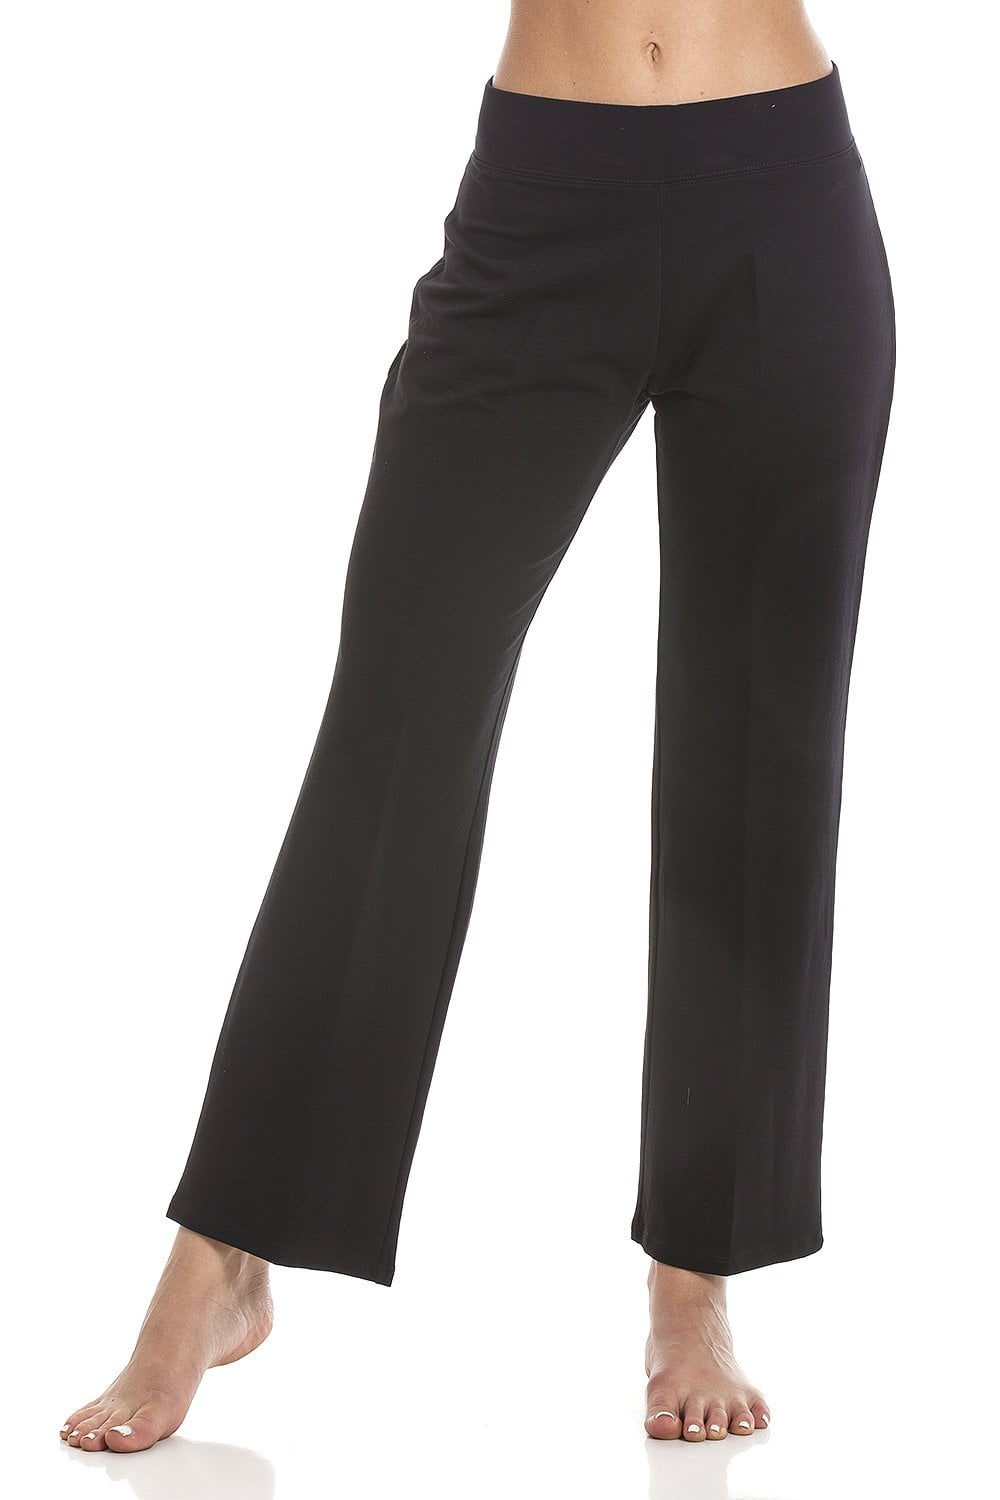 cheapest price choose latest highly praised Womens Black Lycra Jogging Bottoms